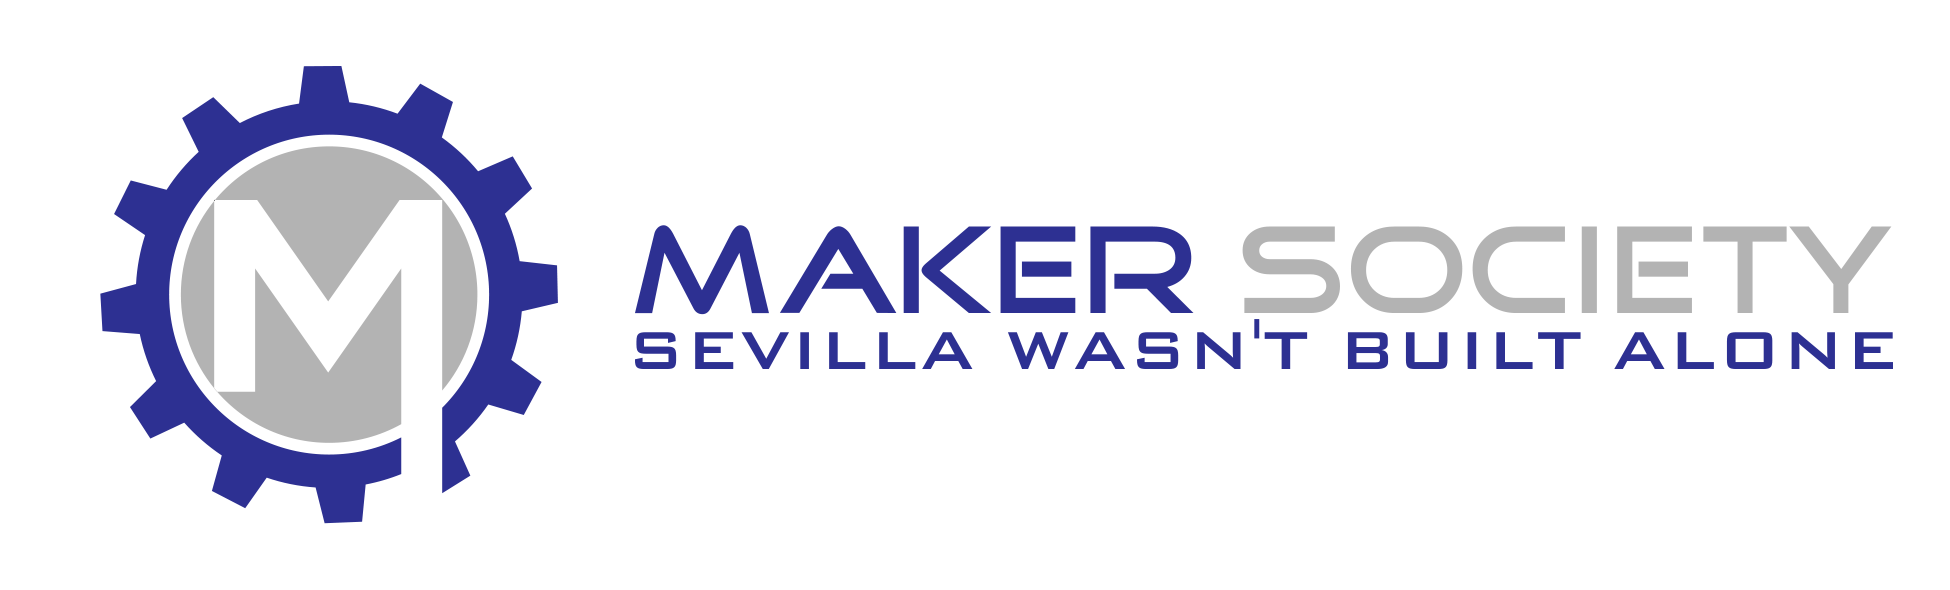 Sevilla Maker Society